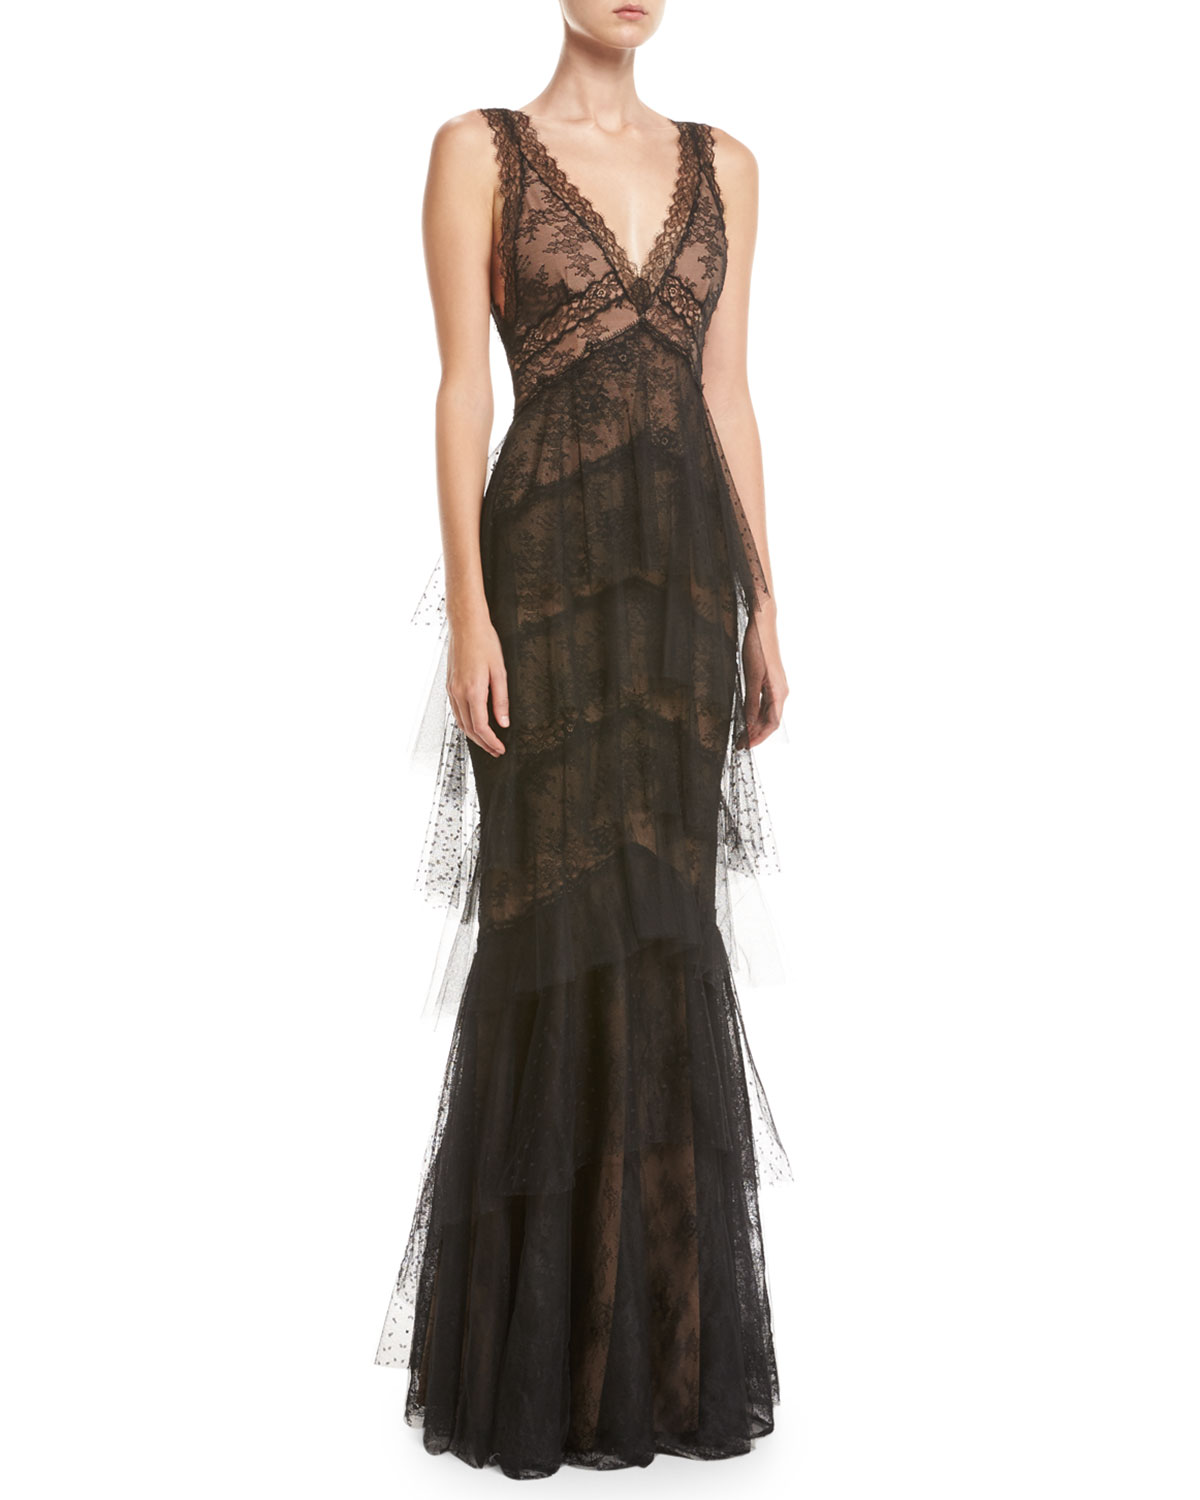 8dfd8d7c1d Marchesa Notte Sleeveless Lace Tiered Gown | Neiman Marcus